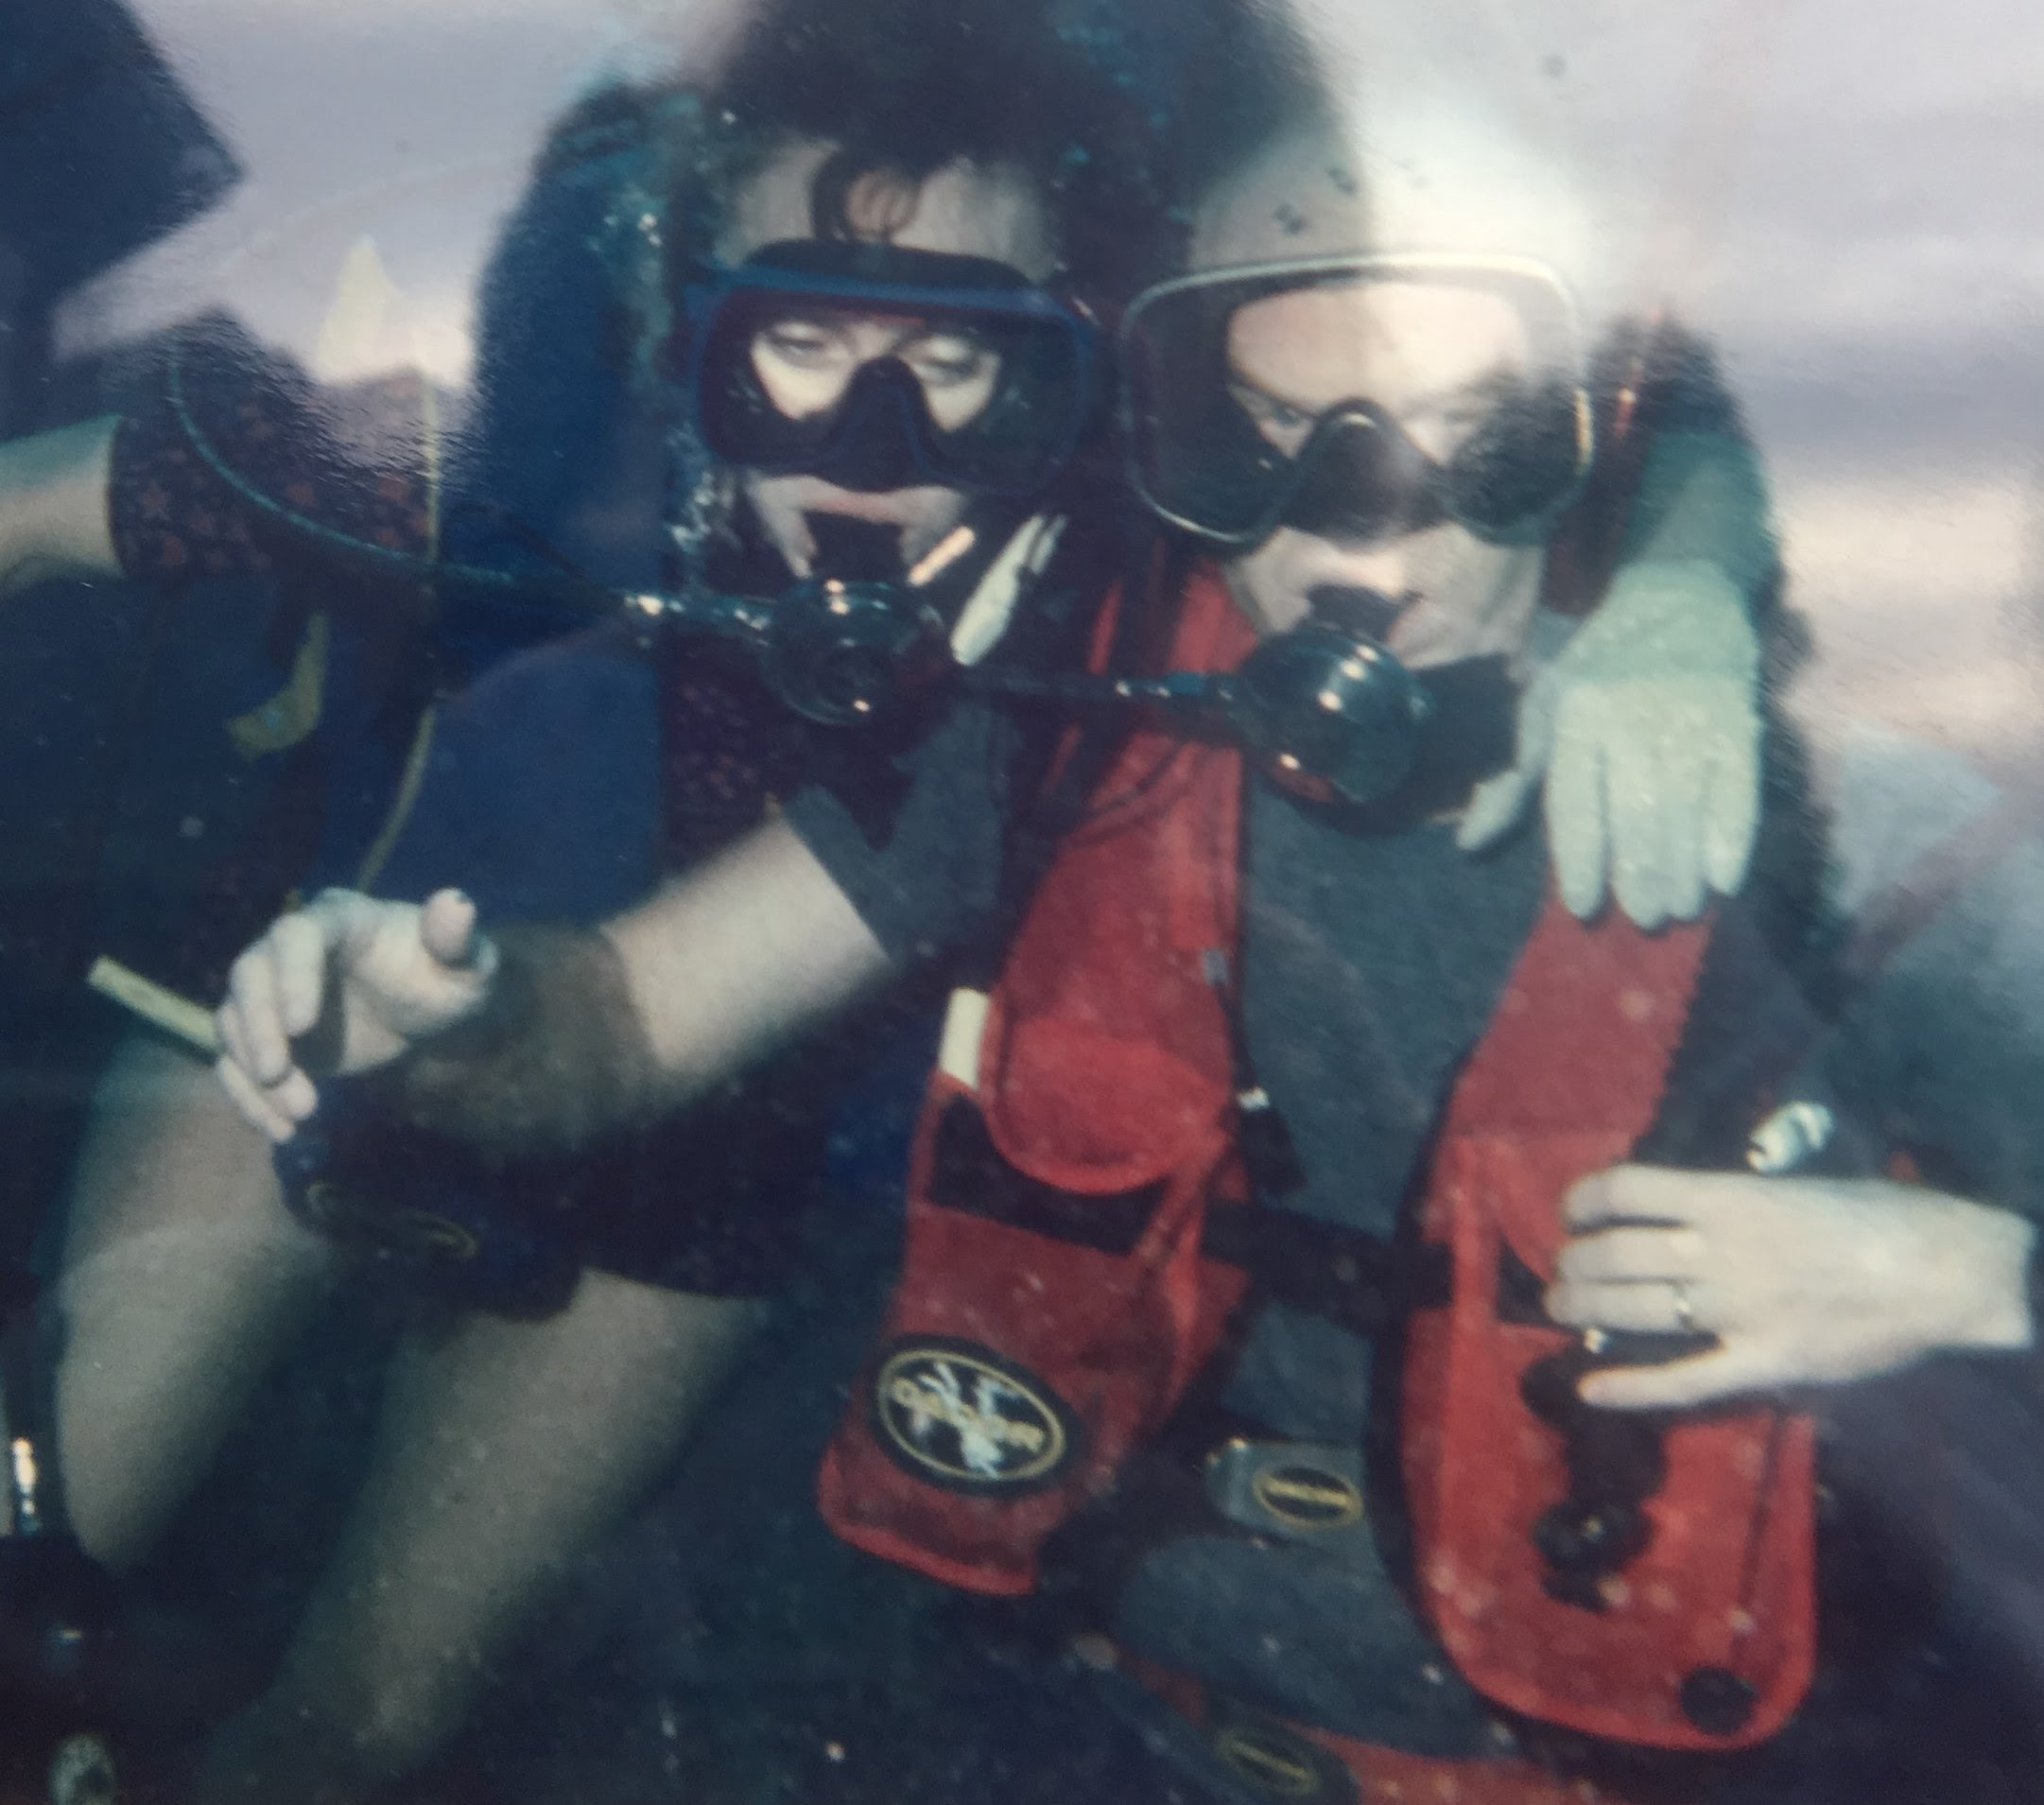 My mom and dad scuba diving